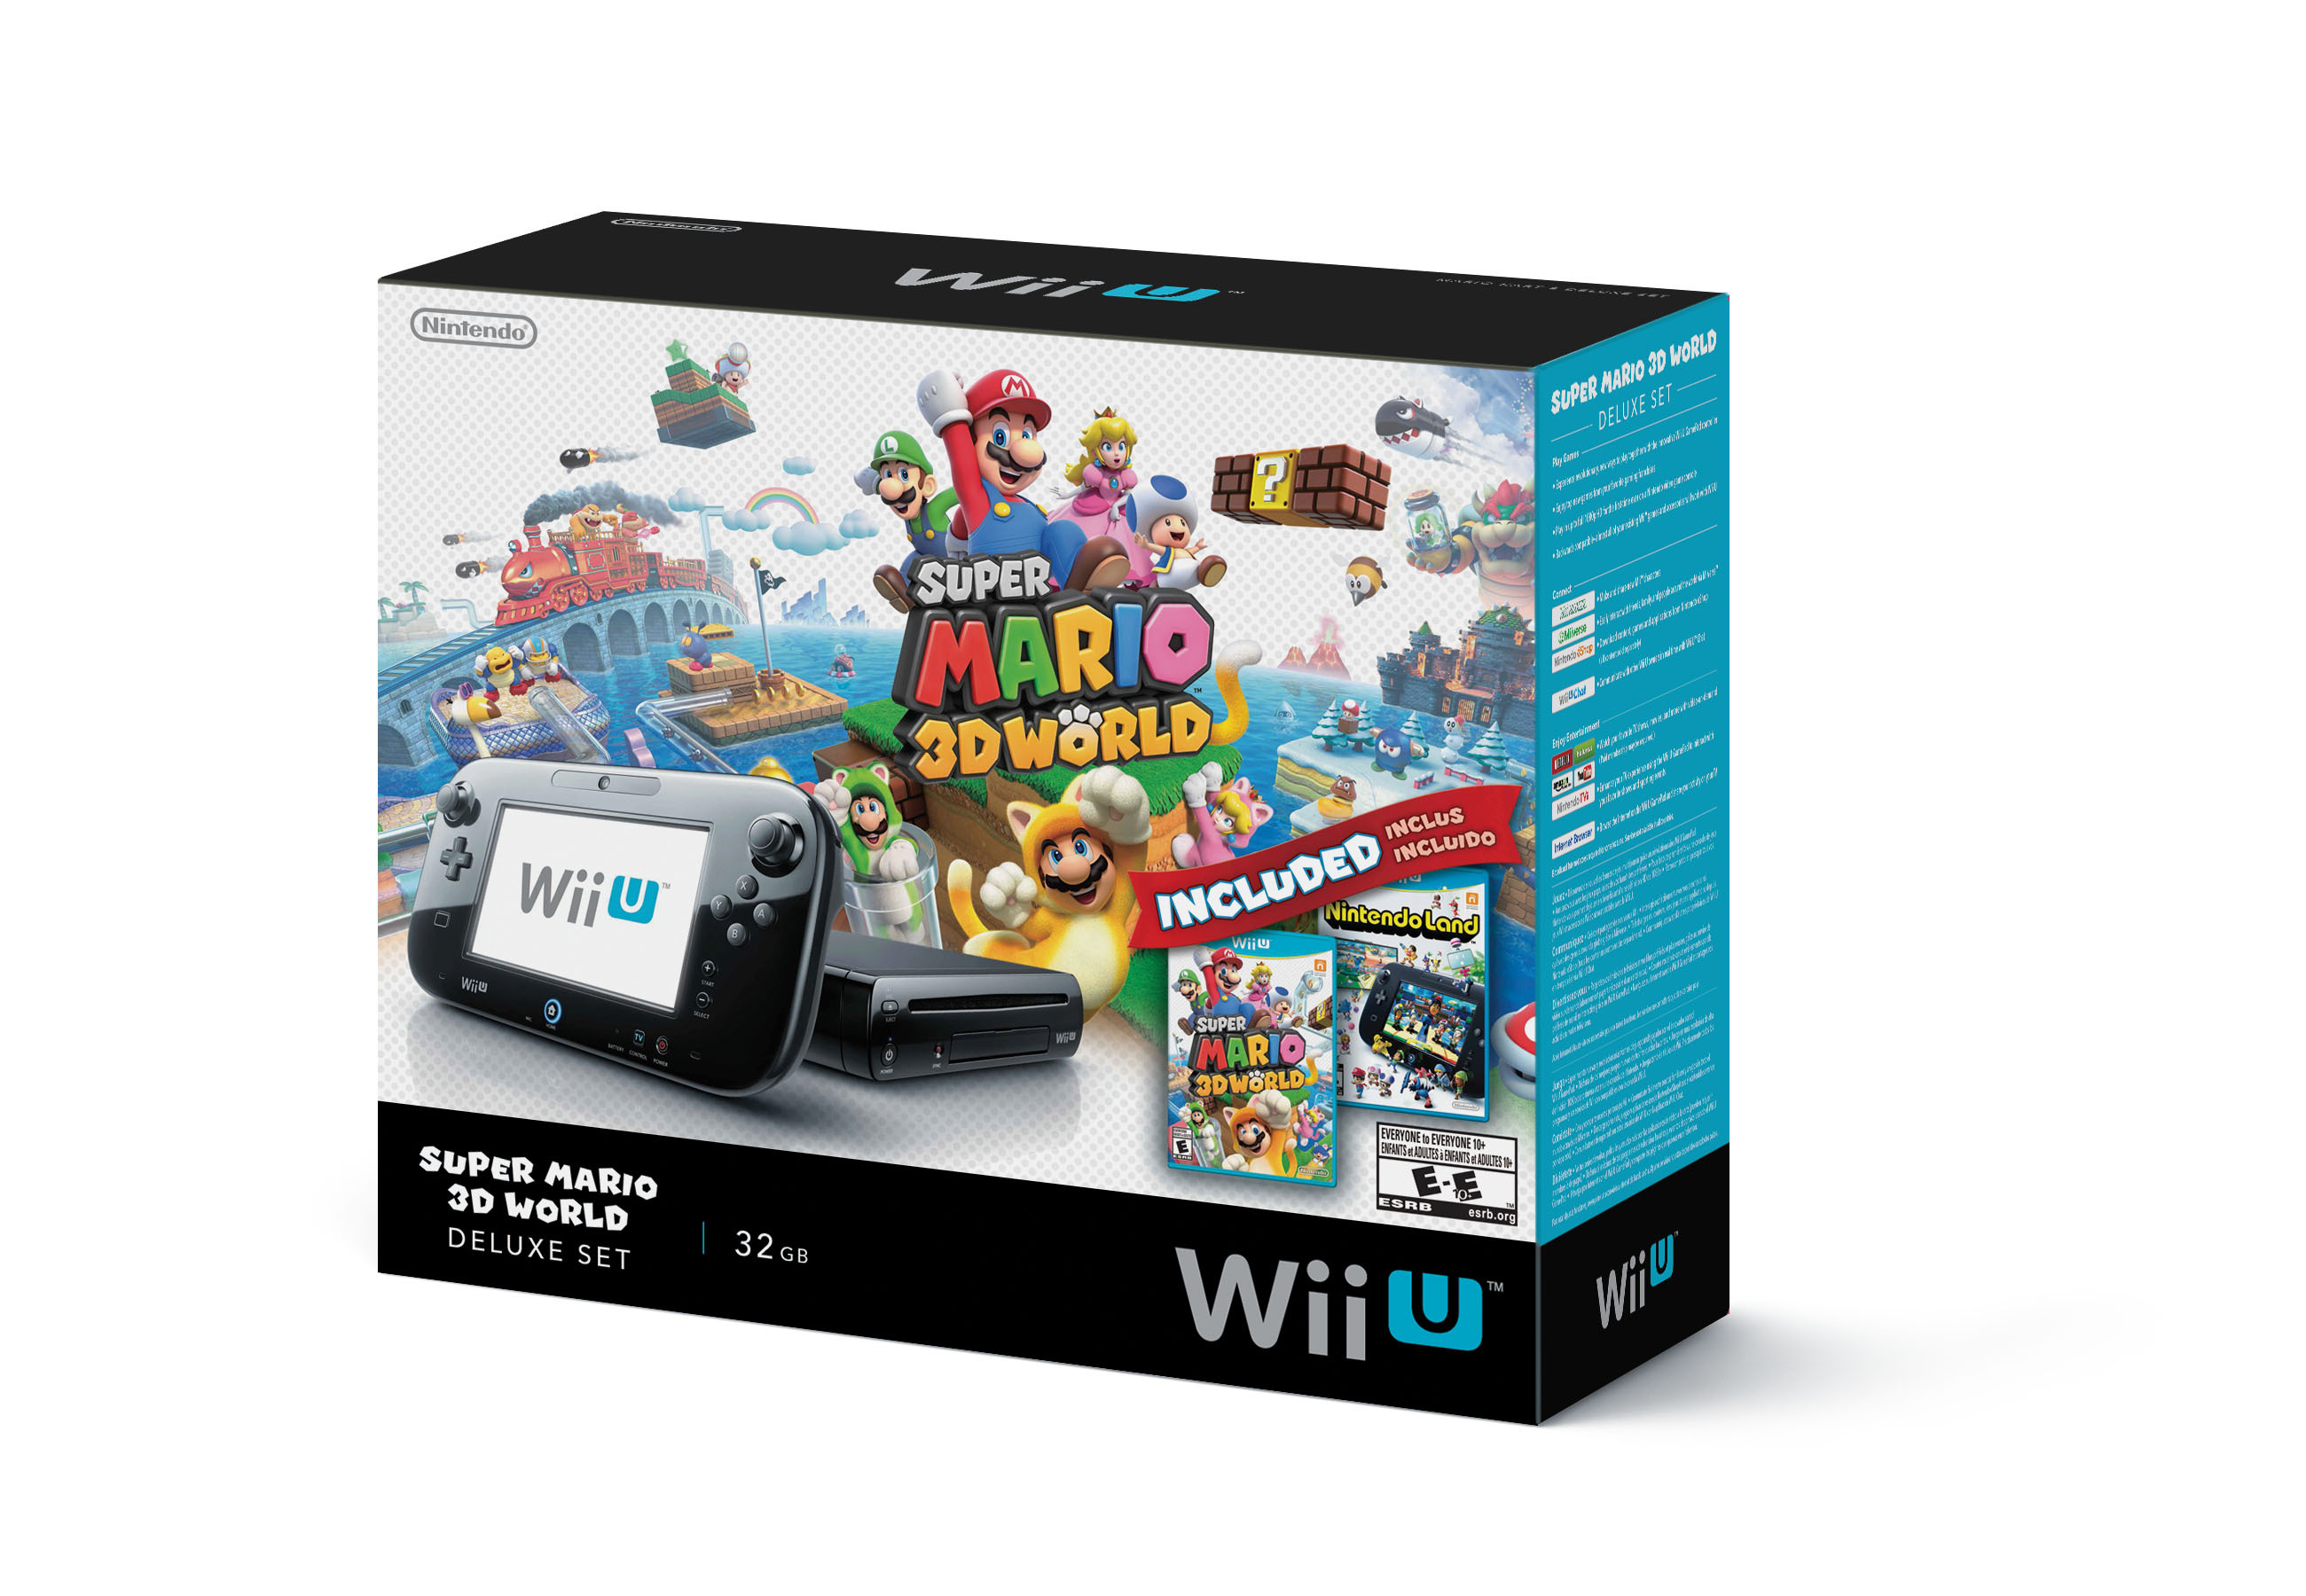 Adding Video Super Smash Bros Amiibo Pokmon And New Hardware Nintendo Switch Red Blue Bundle 2games 2amiibo Bundles Star In Nintendos Holiday Lineup Business Wire